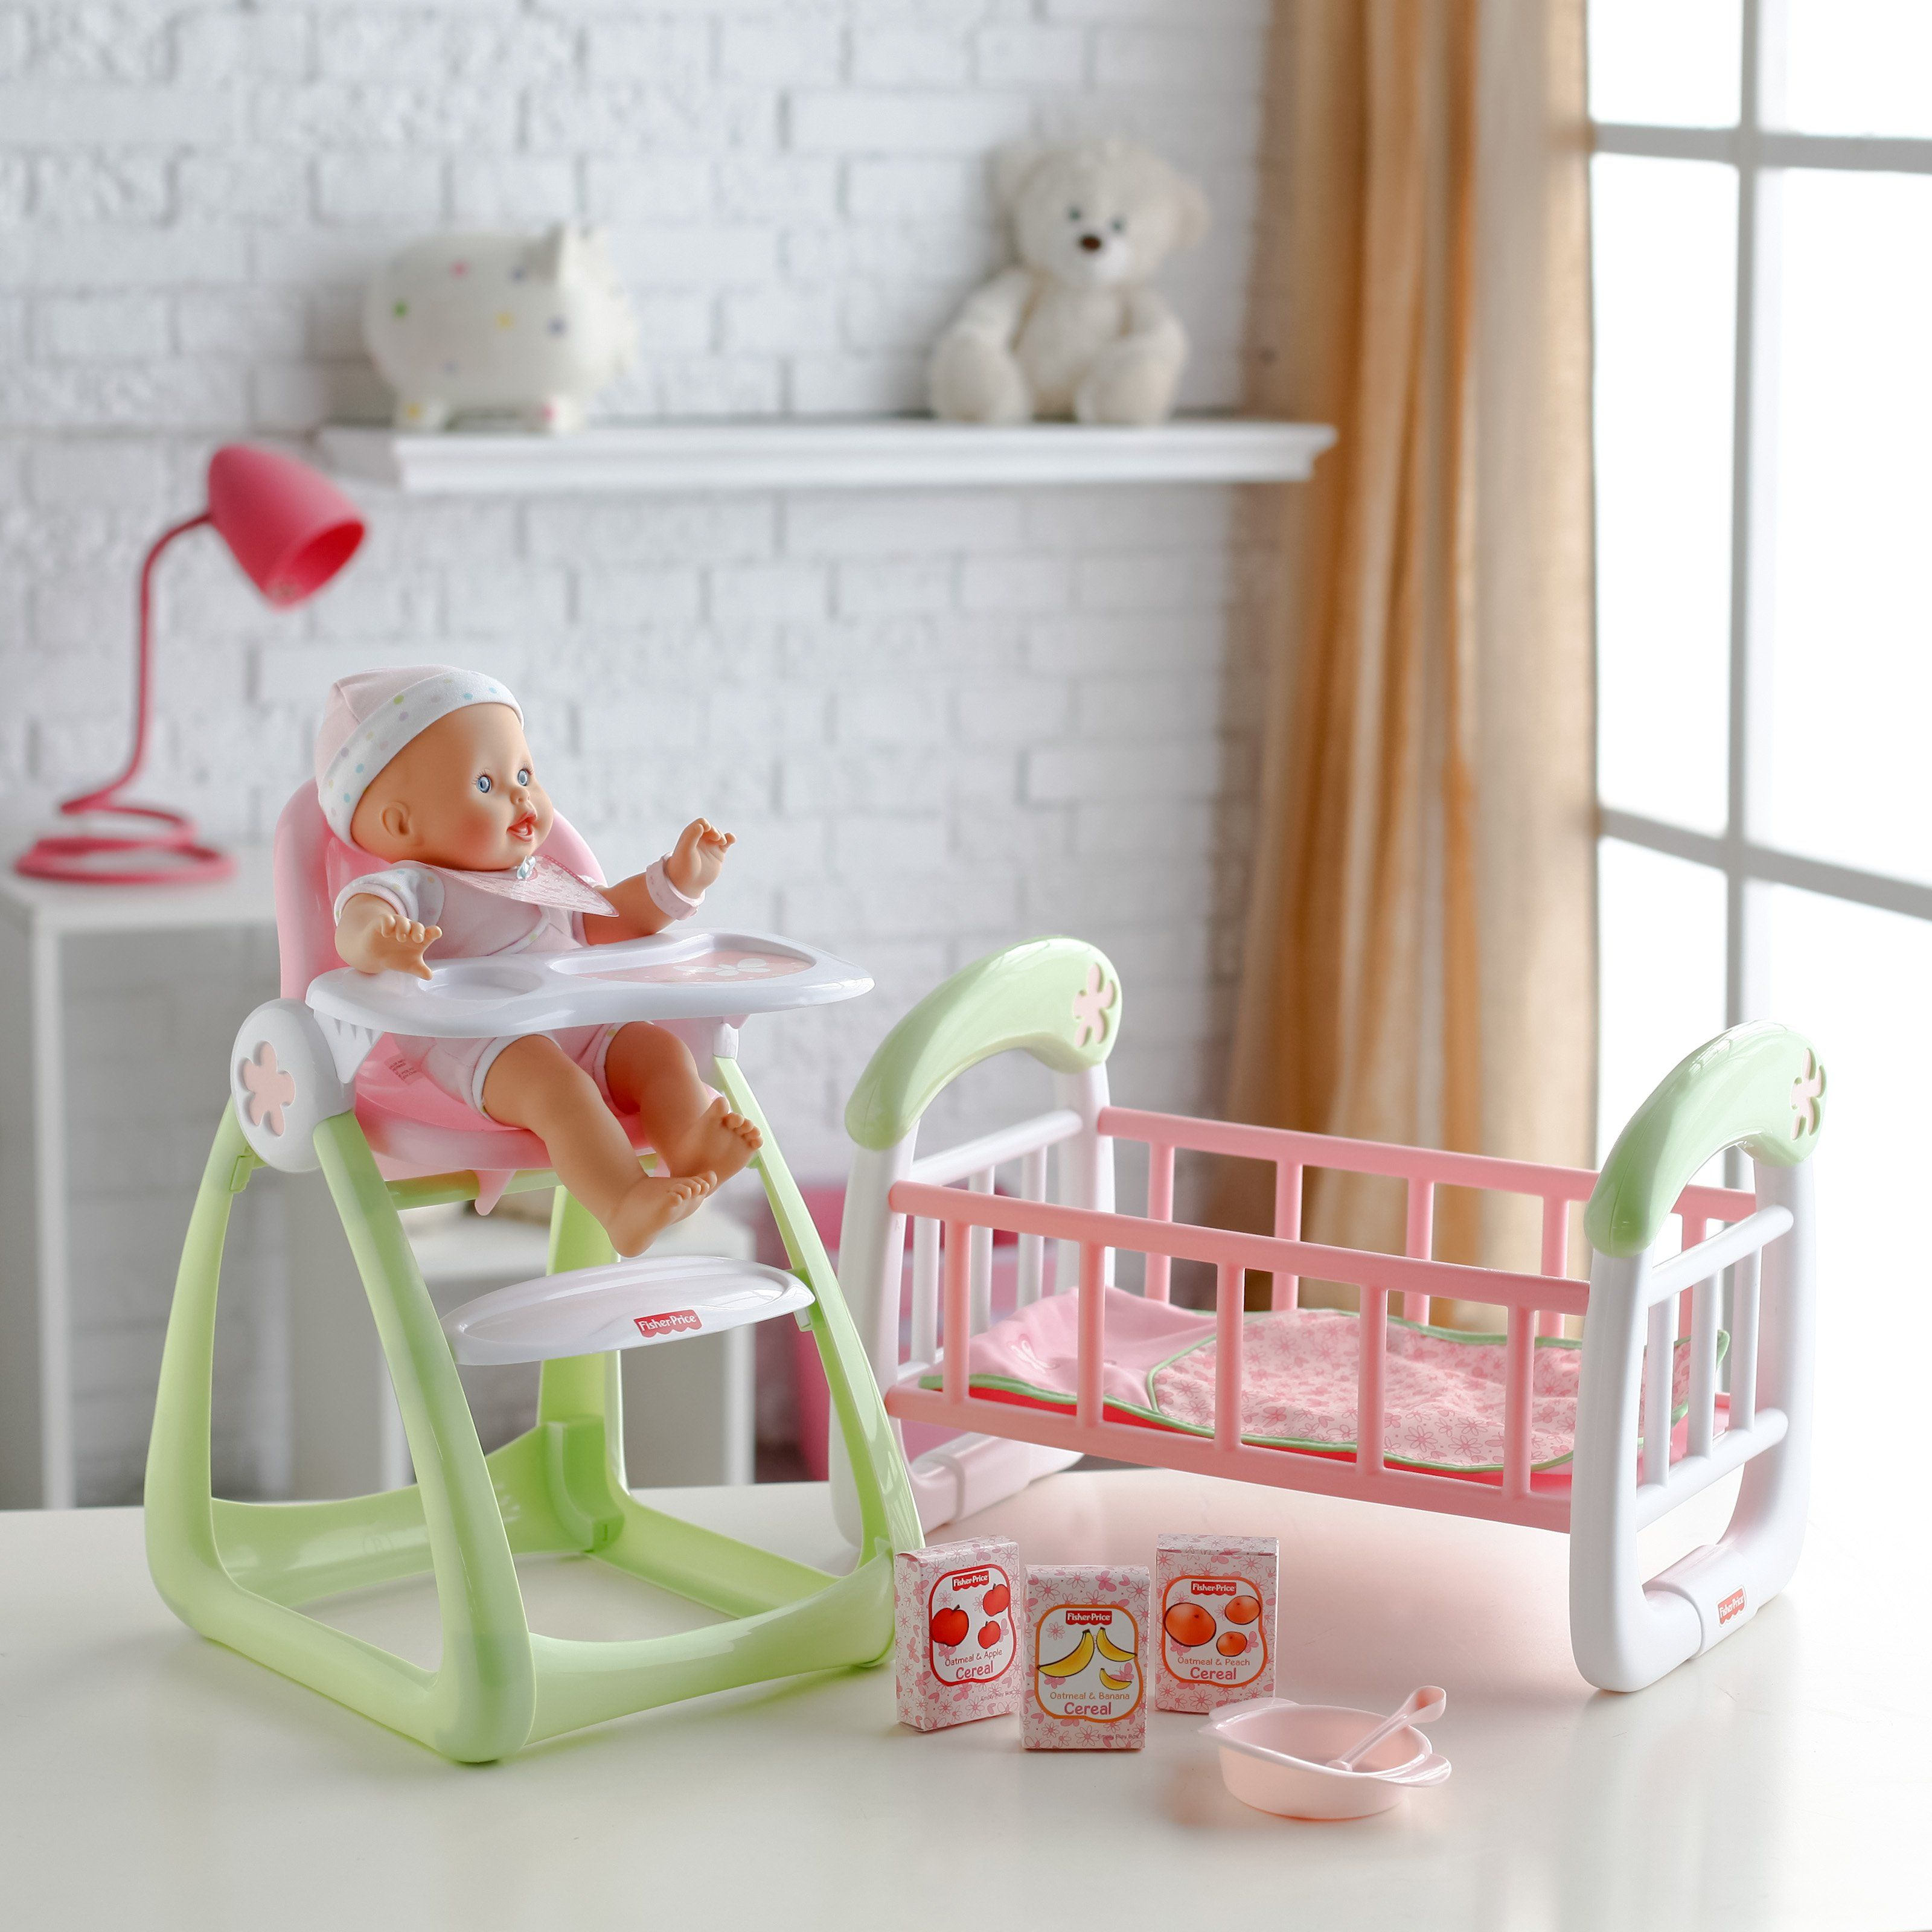 Fisher Price Play Set Baby doll furniture, Fisher price